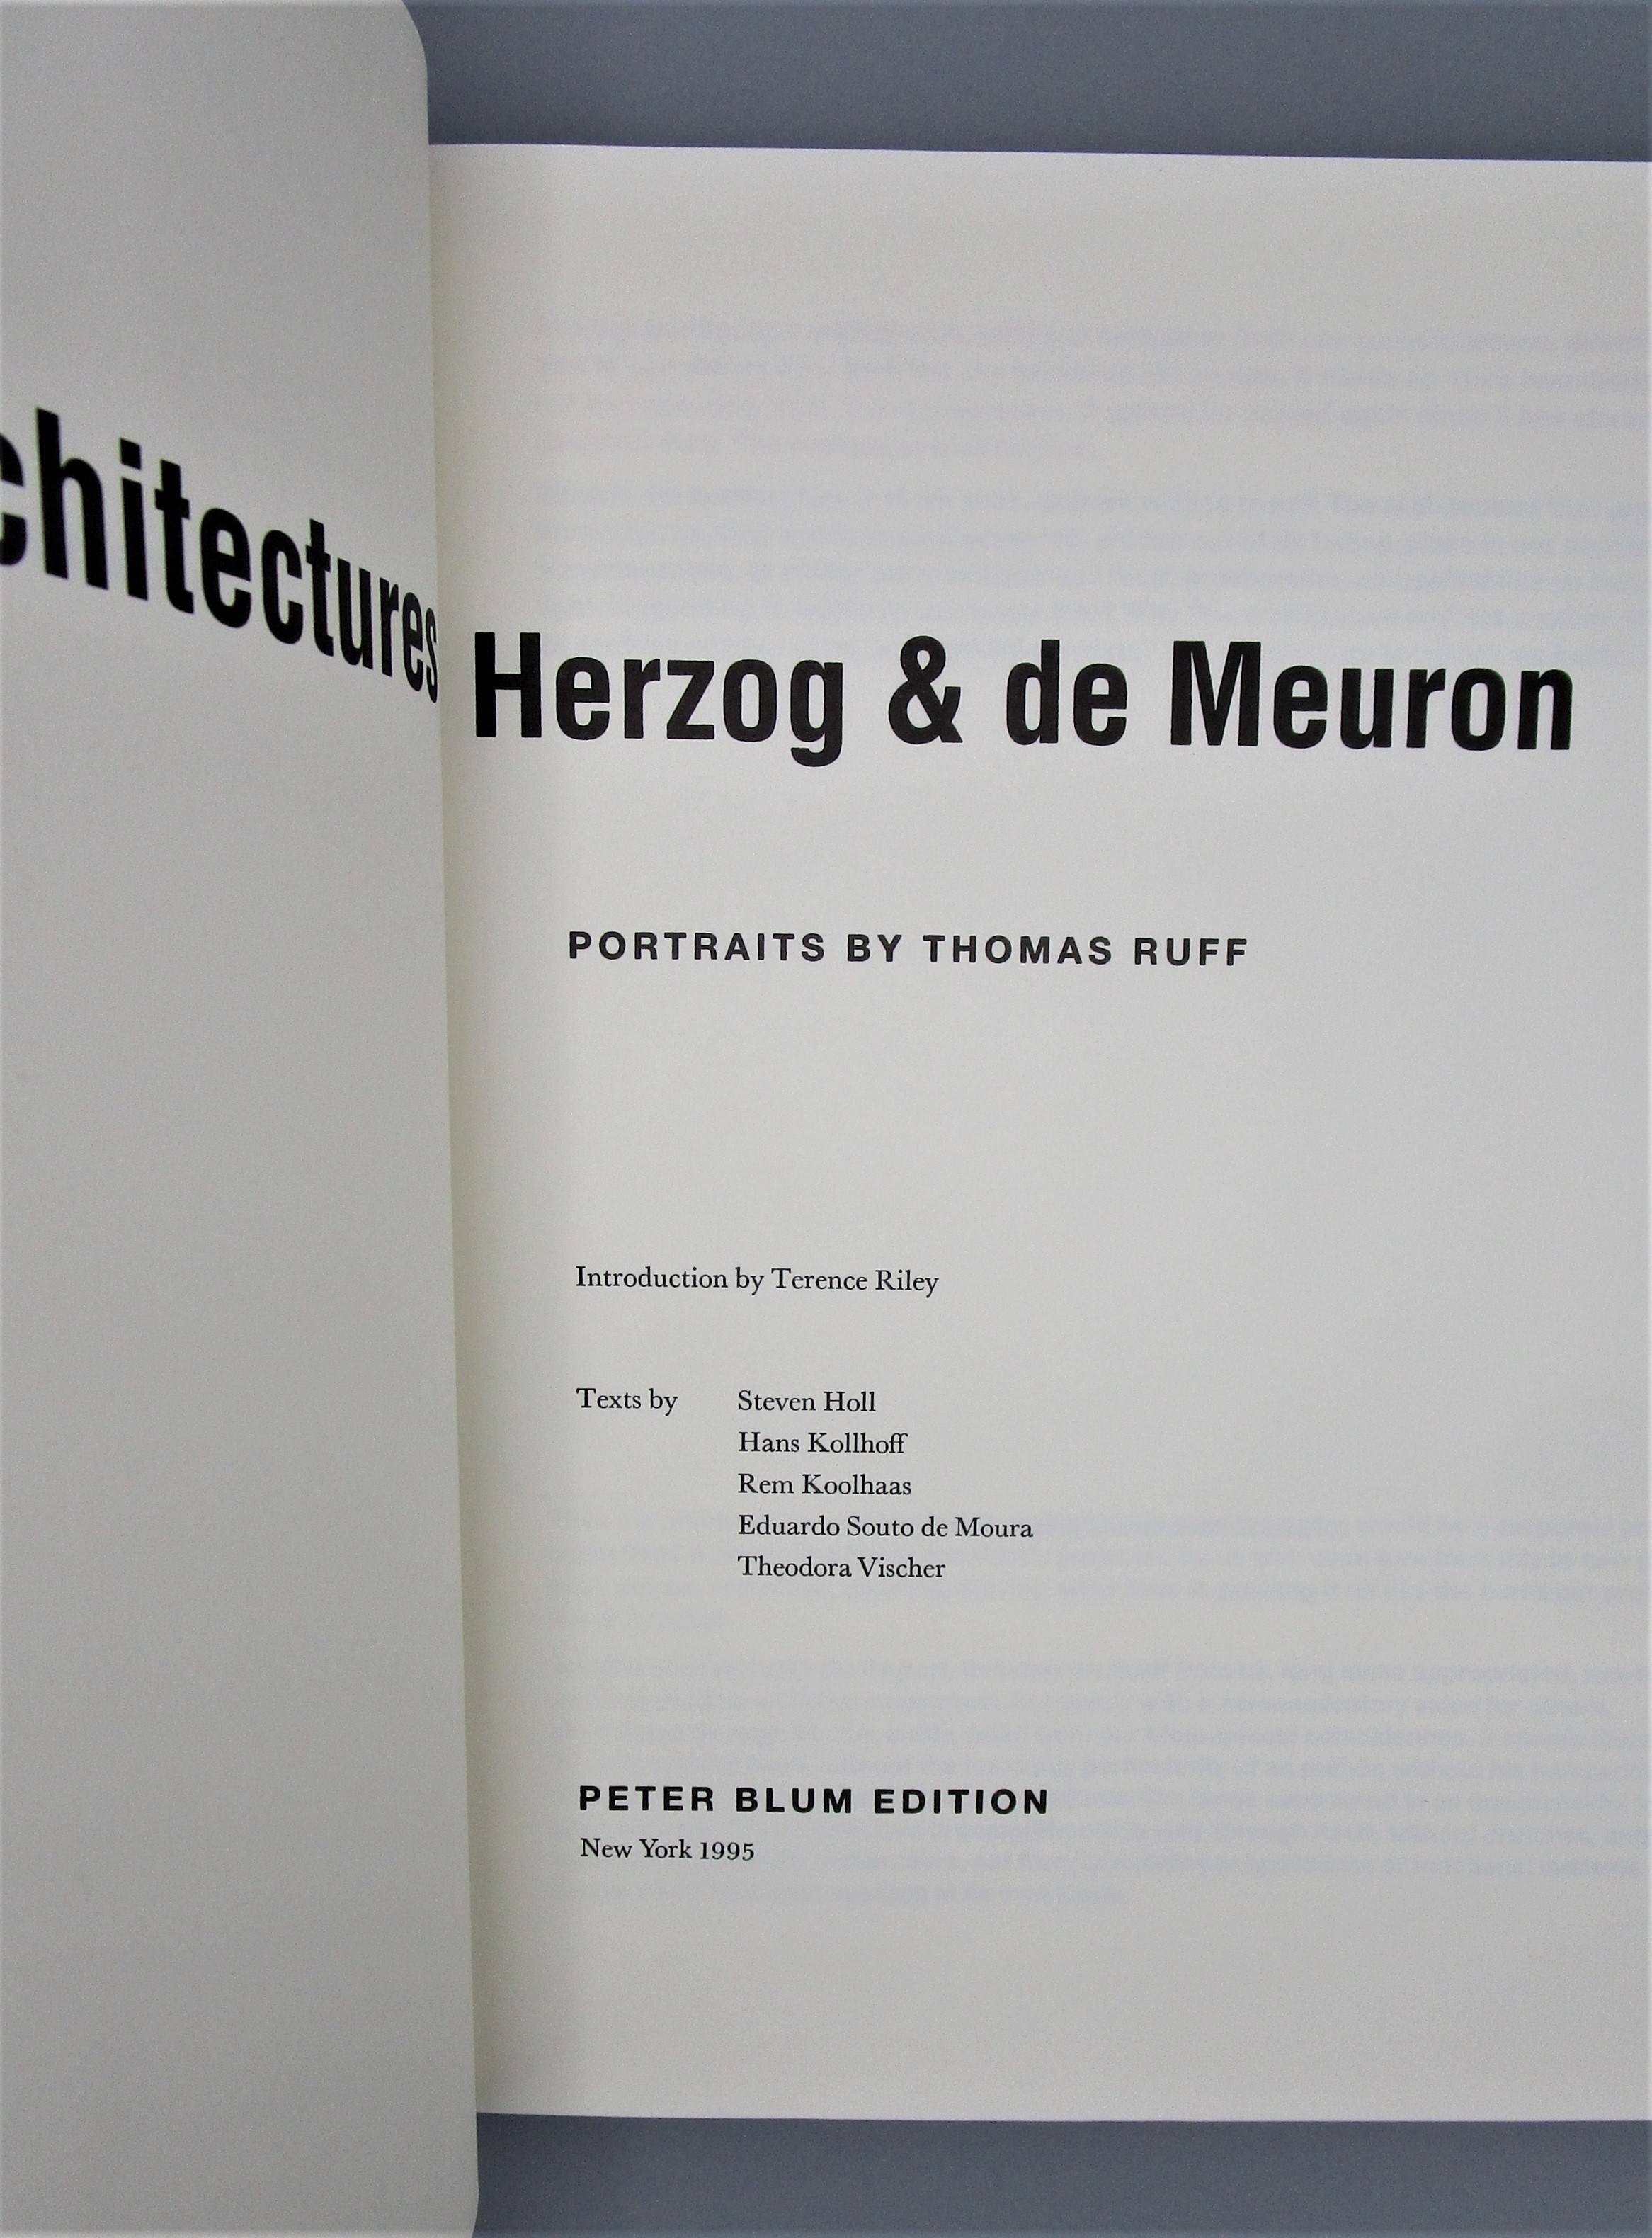 ARCHITECTURES OF HERZOG & DE MEURON, by Thomas Ruff - 1995 [2nd Ed]